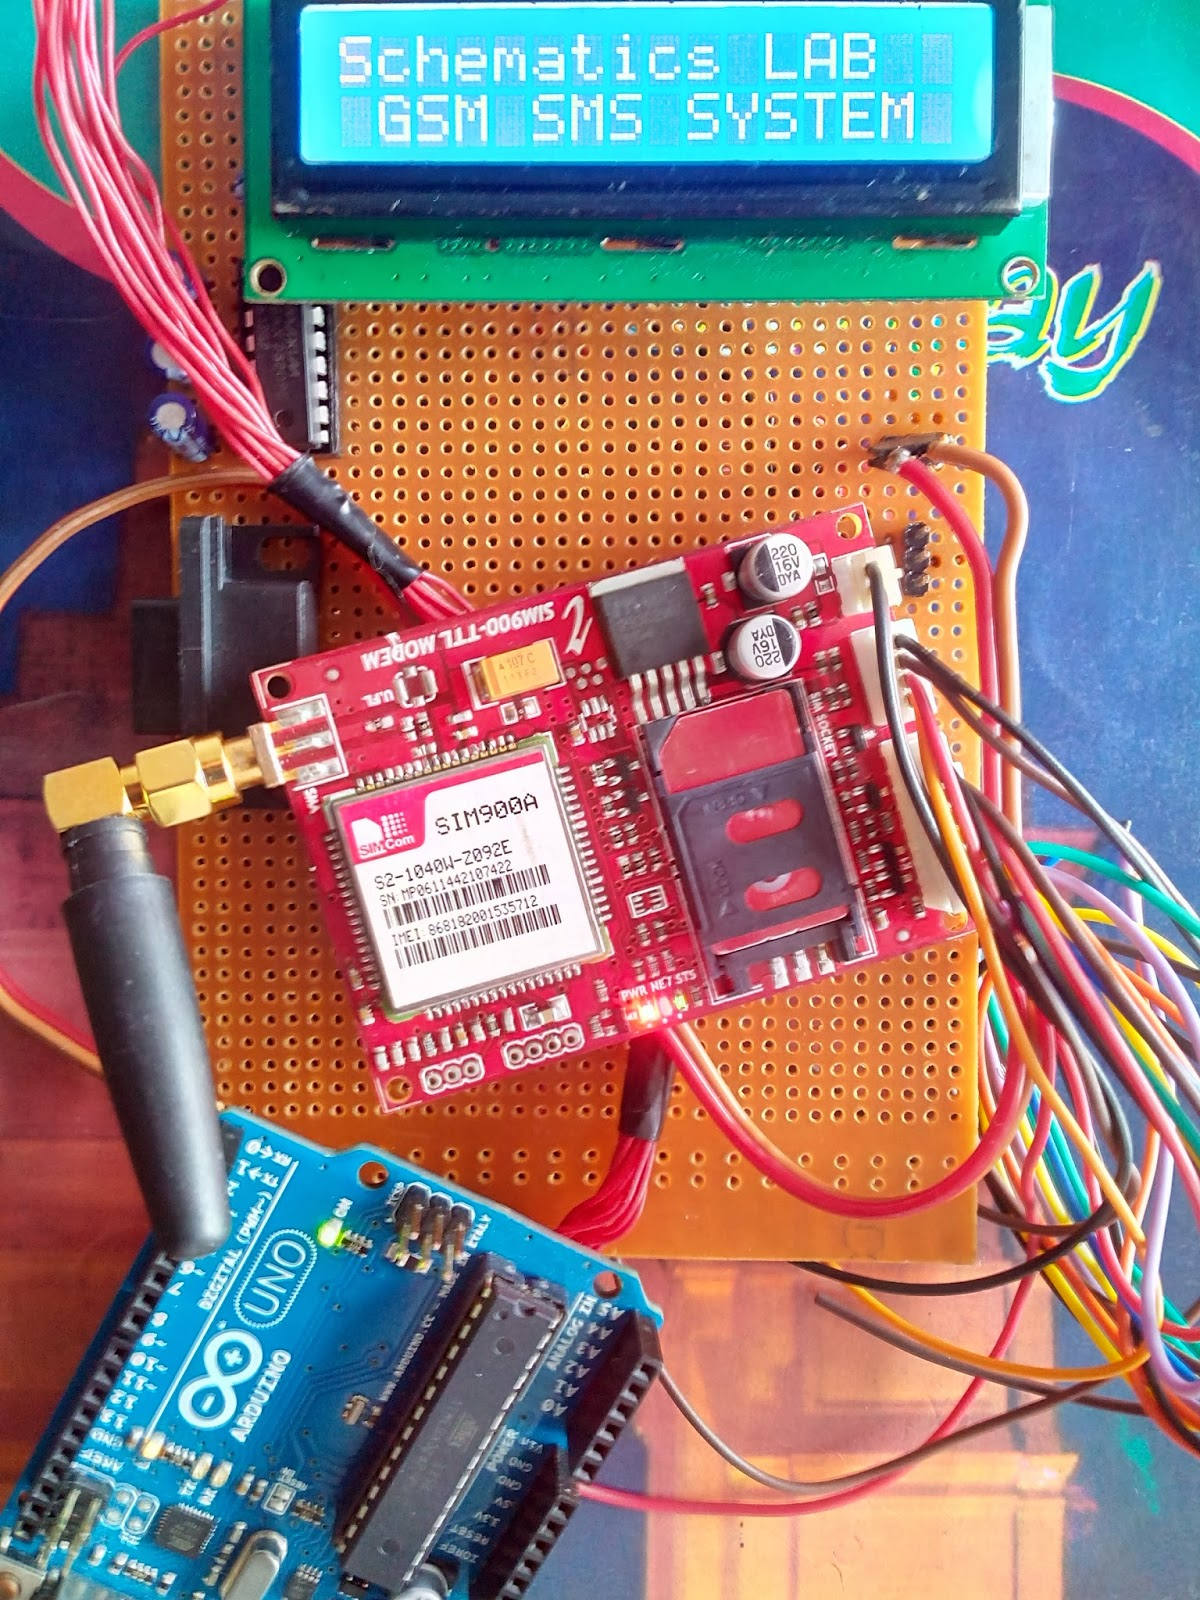 Industrial trainor project consultant on microcontroller